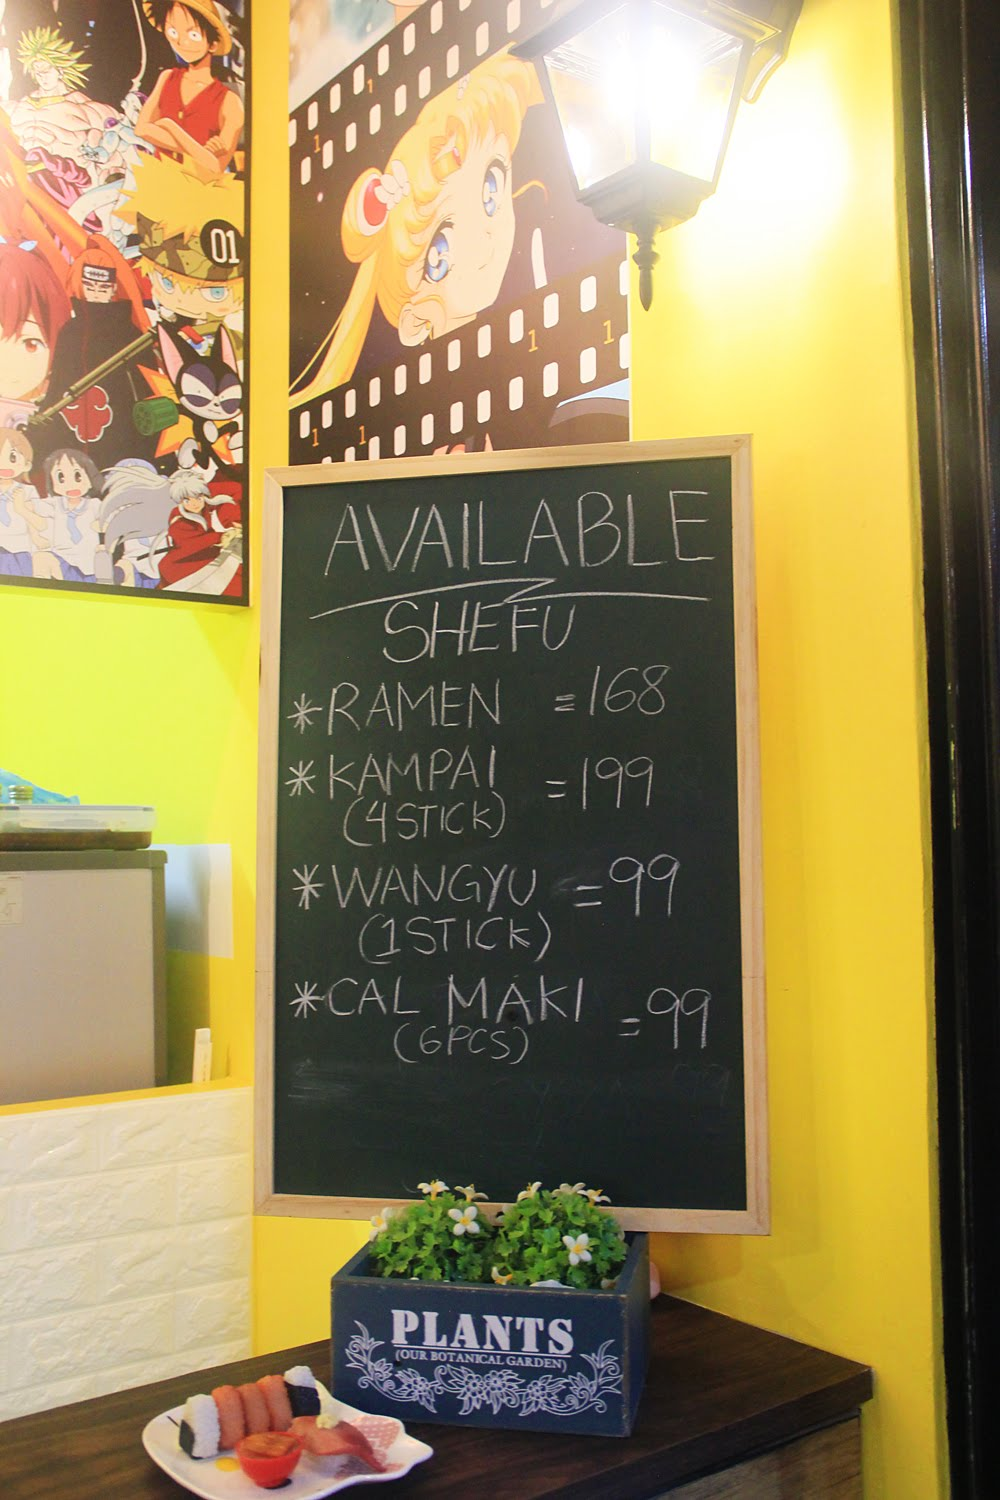 Shefu Kid Anime Street Food Menu